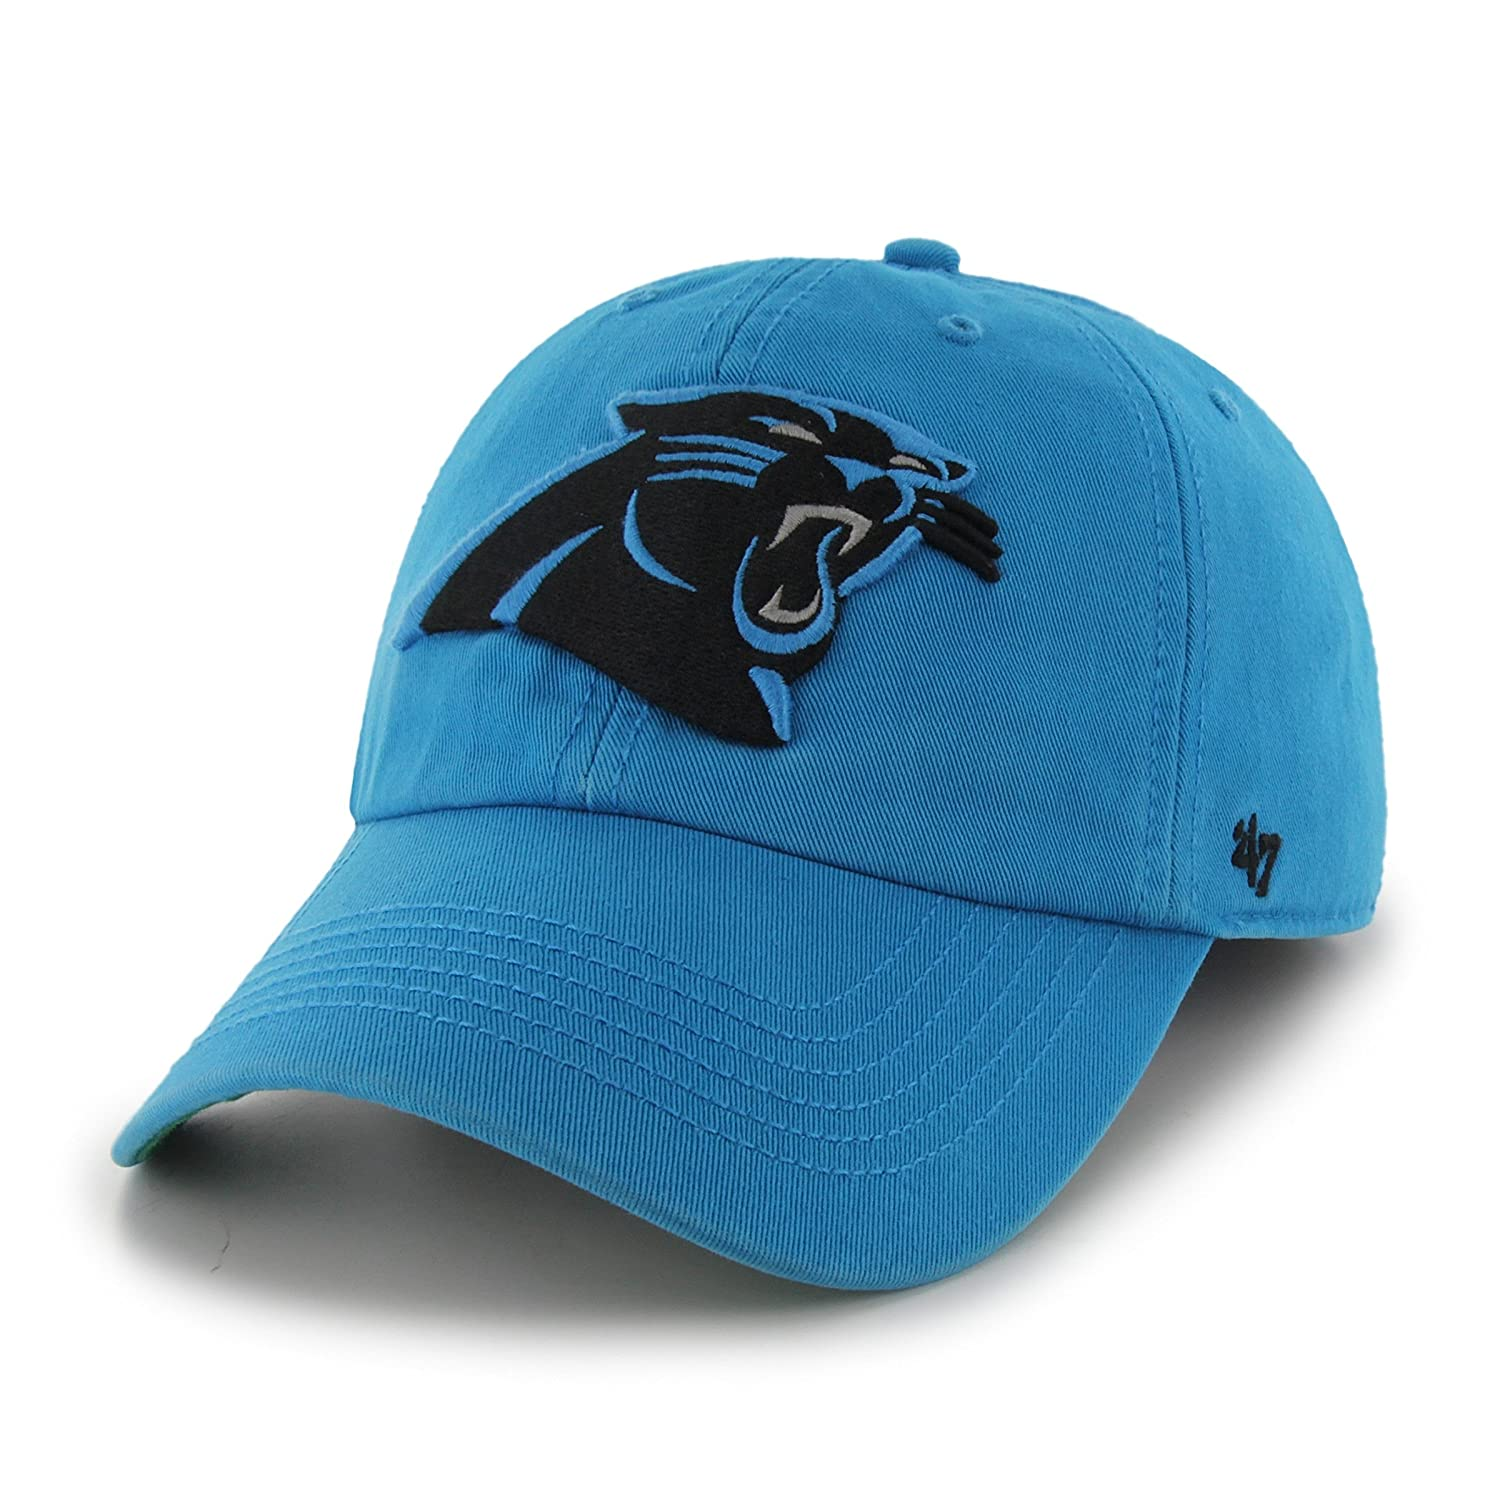 074be6a2 NFL '47 Franchise Fitted Hat